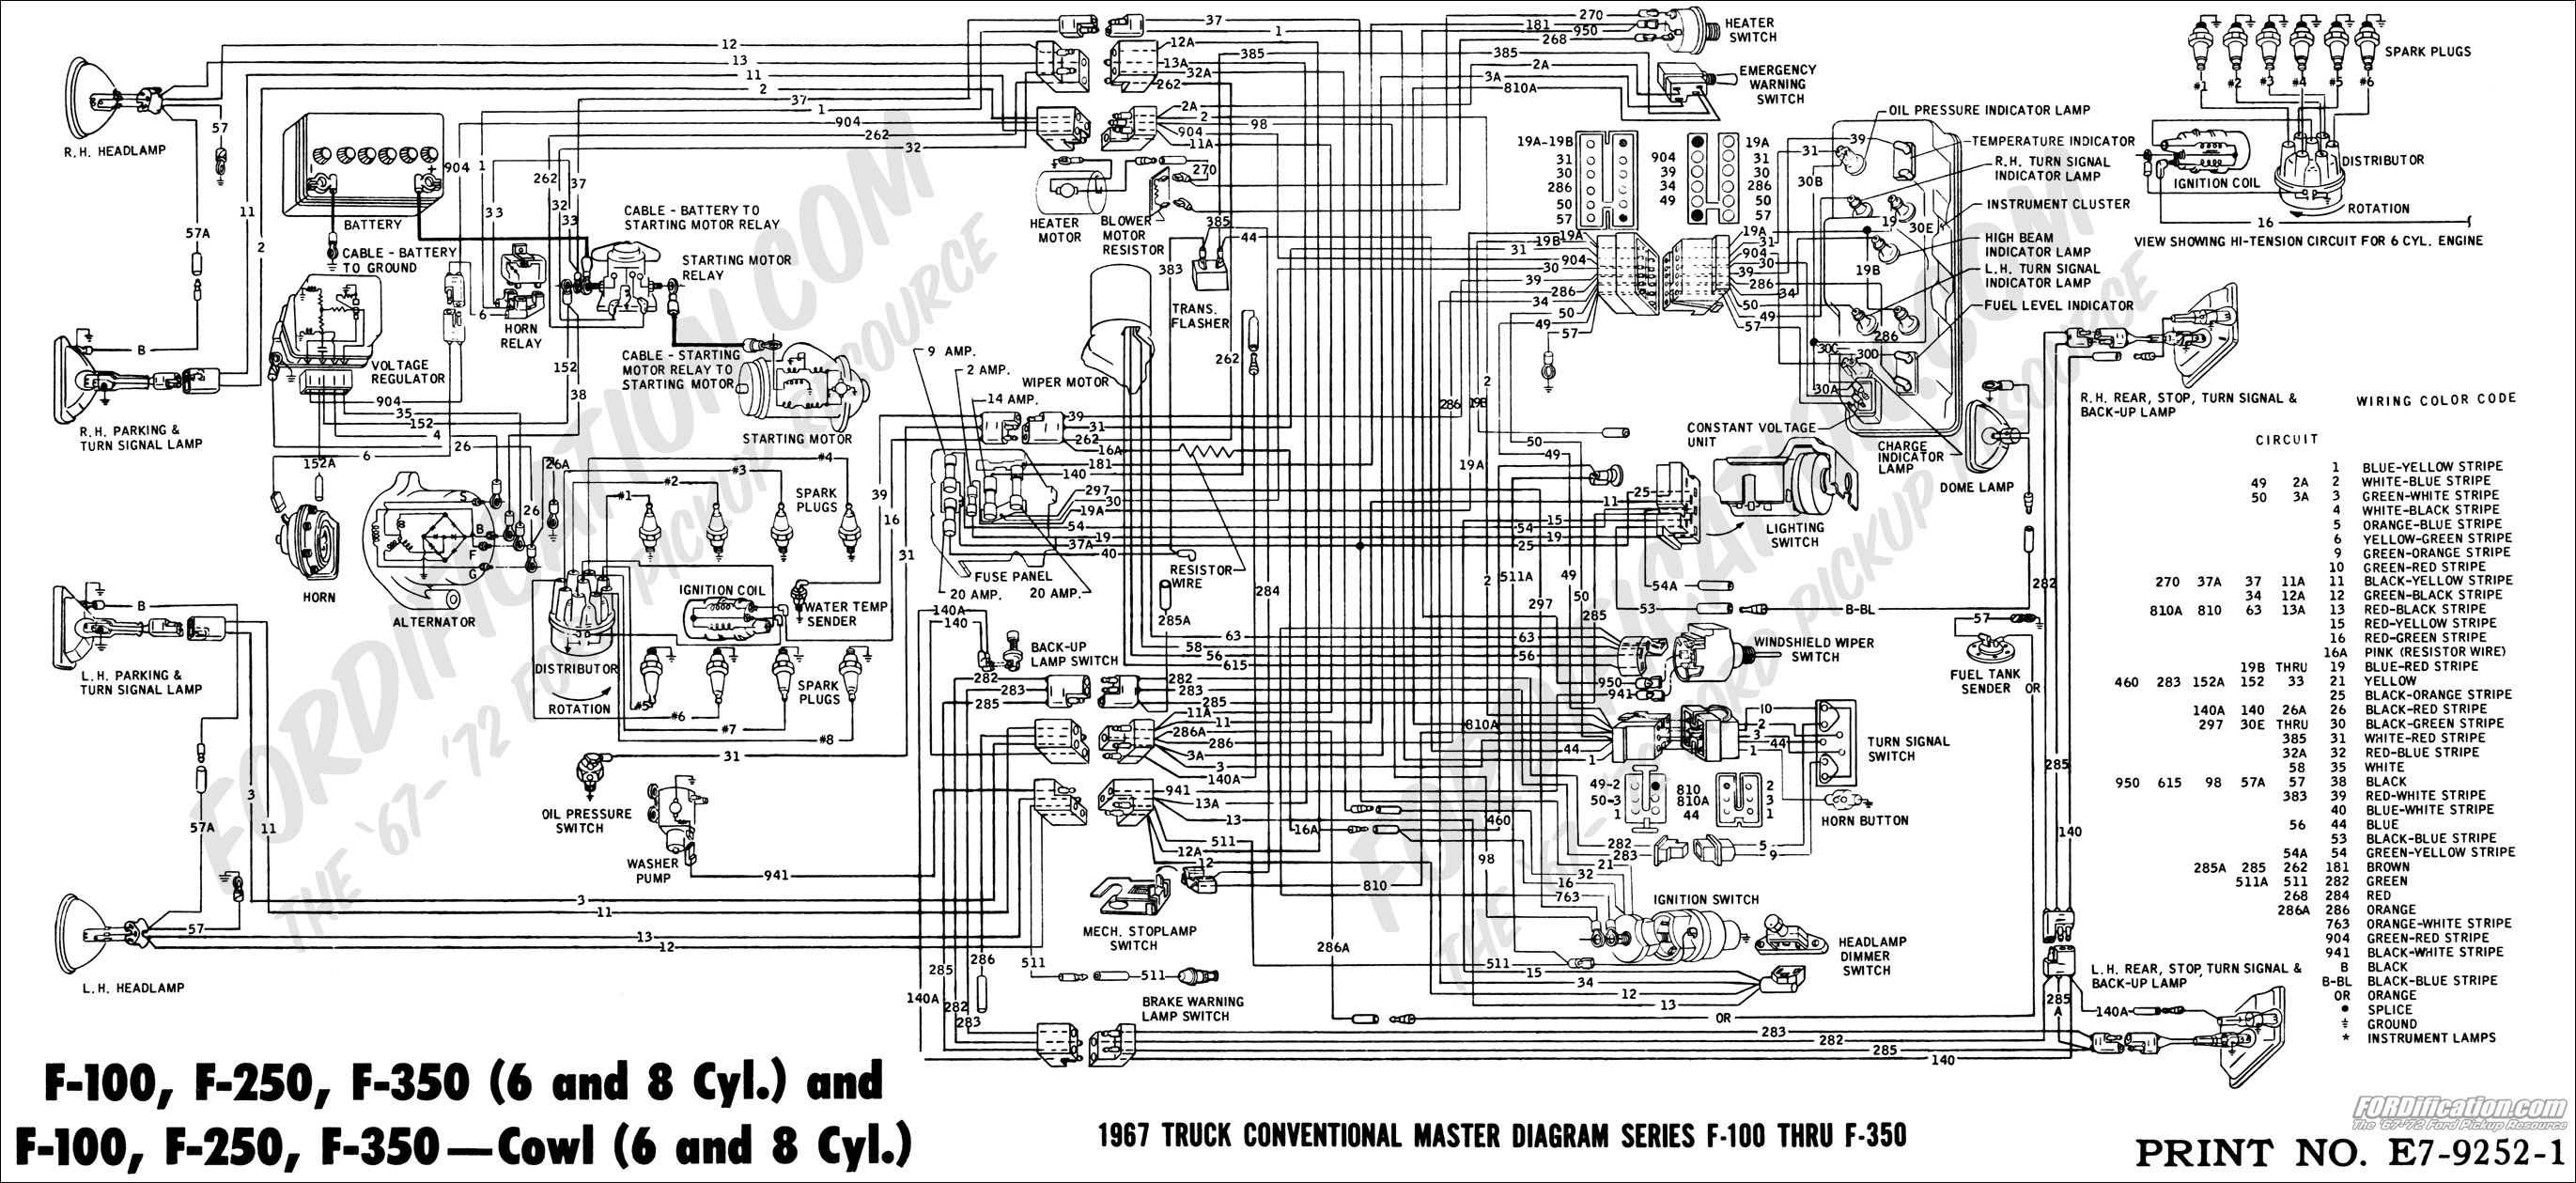 2001 Ford F 150 4 6ltr Fuse Box Diagram Reinvent Your Wiring 2004 F450 2003 E350 Starter Schematics Diagrams U2022 Rh Parntesis Co 2002 2007 F150